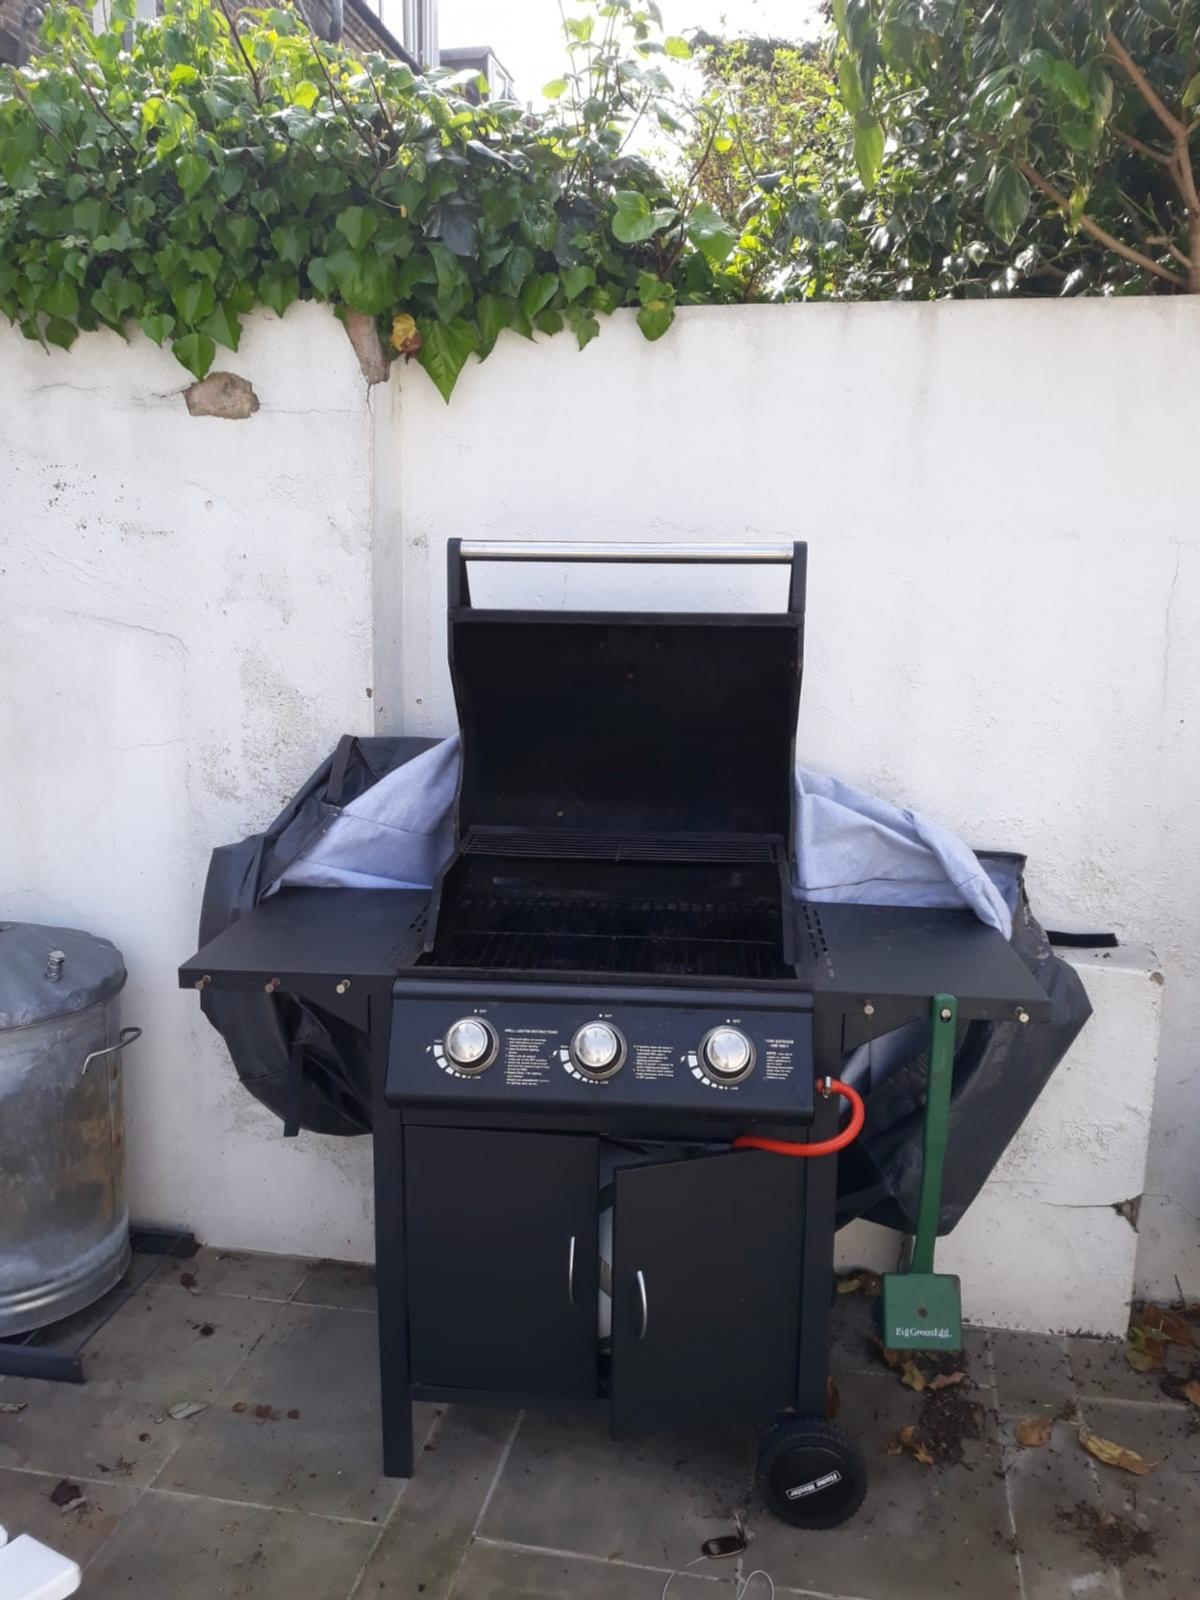 Flame Master Bbq Grill.Flame Master Bbq Gas 3 Burnners In W6 London Fur 120 00